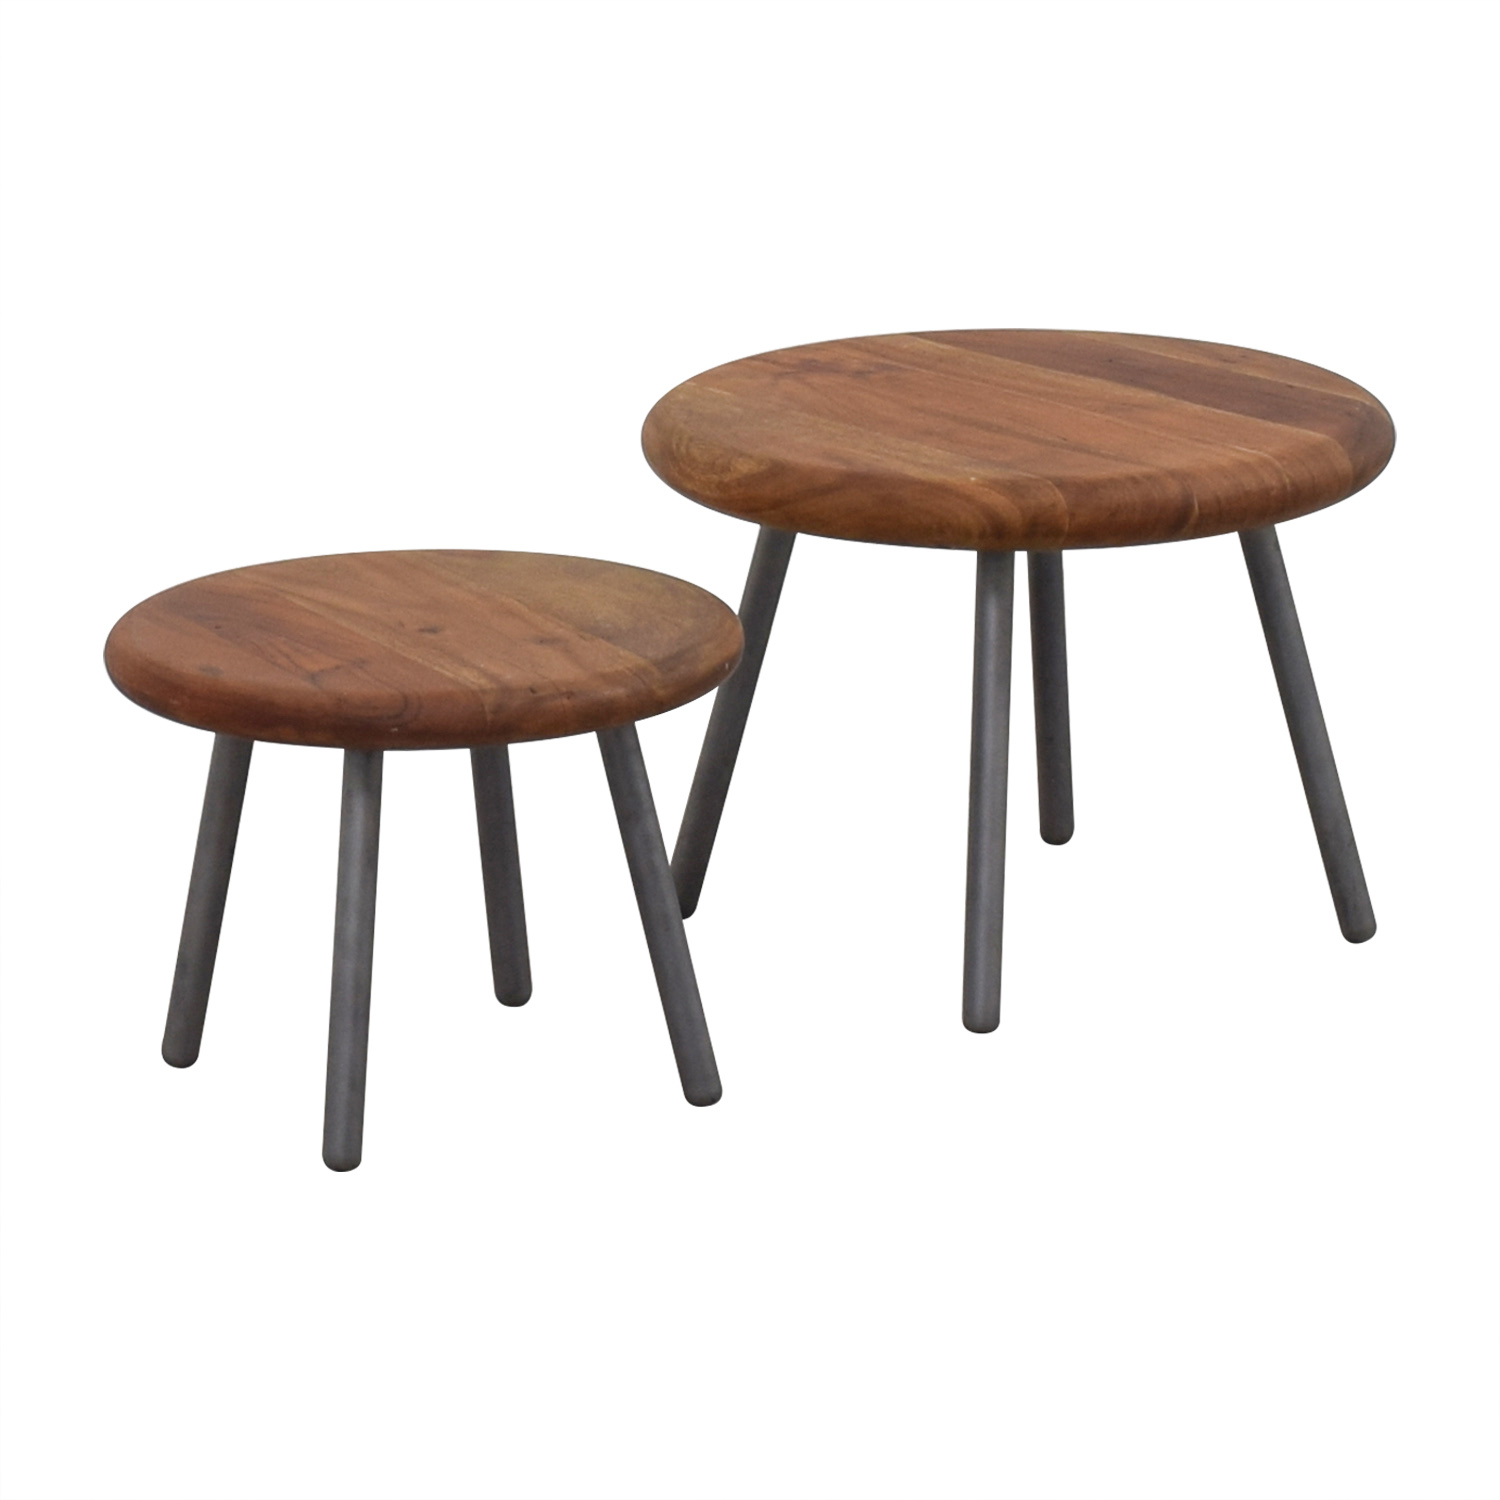 shop CB2 CB2 Wafer Tables online